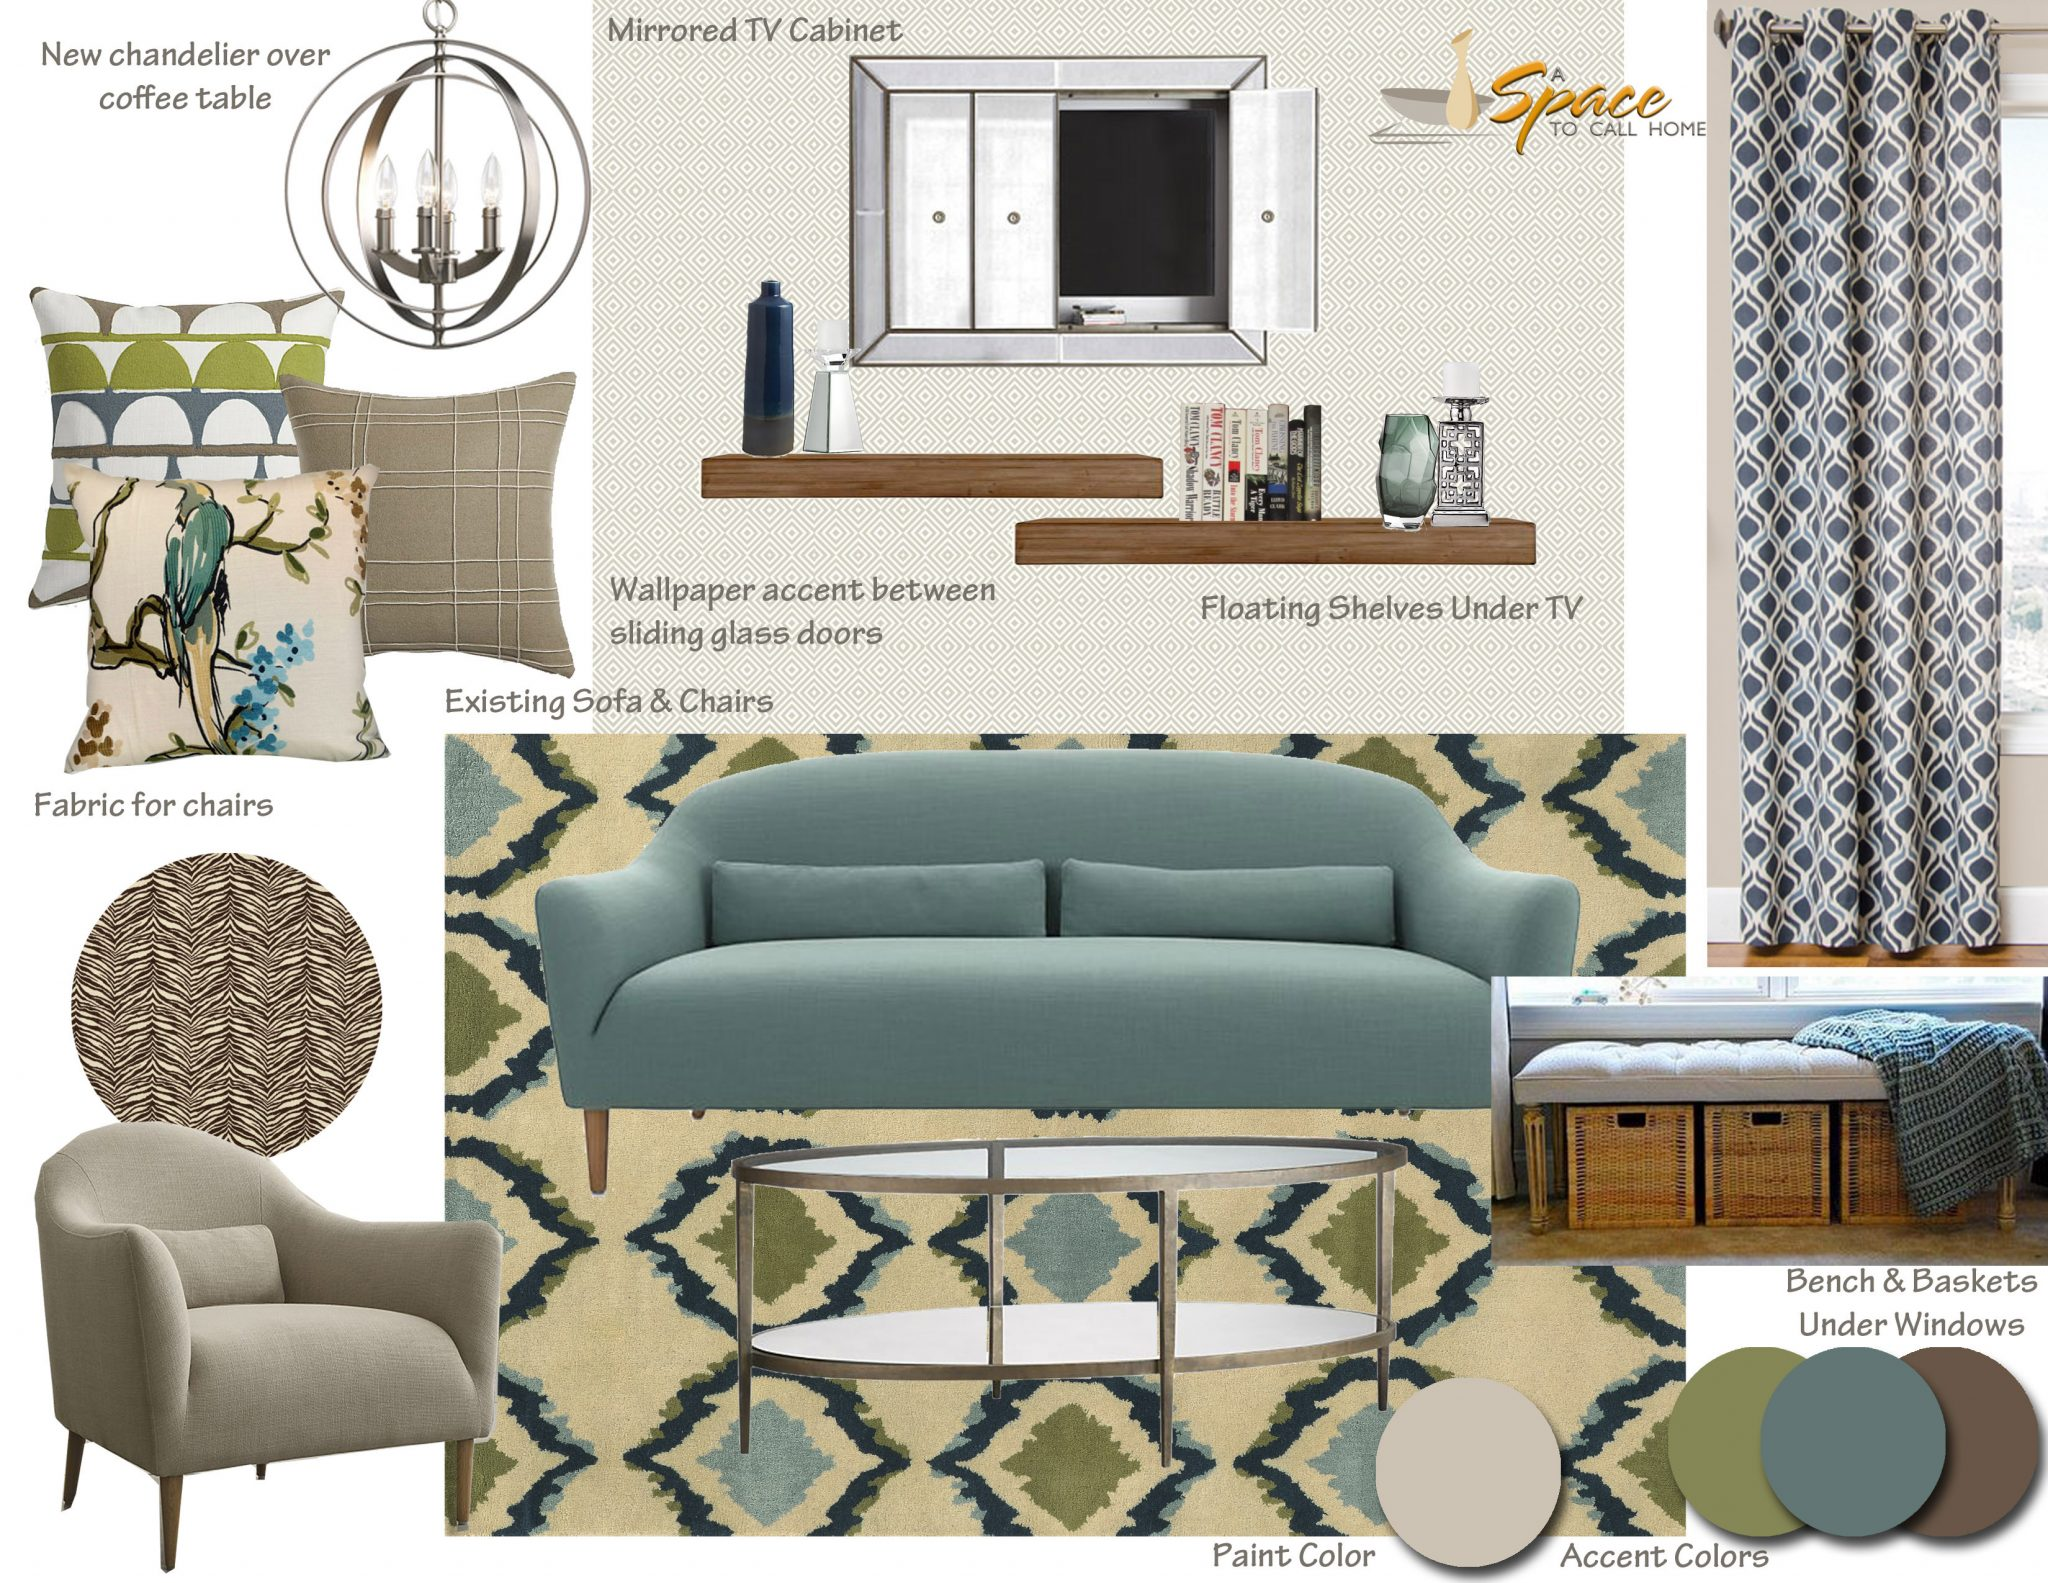 Mid Century Modern Living Room mid century modern living room inspiration board - a space to call